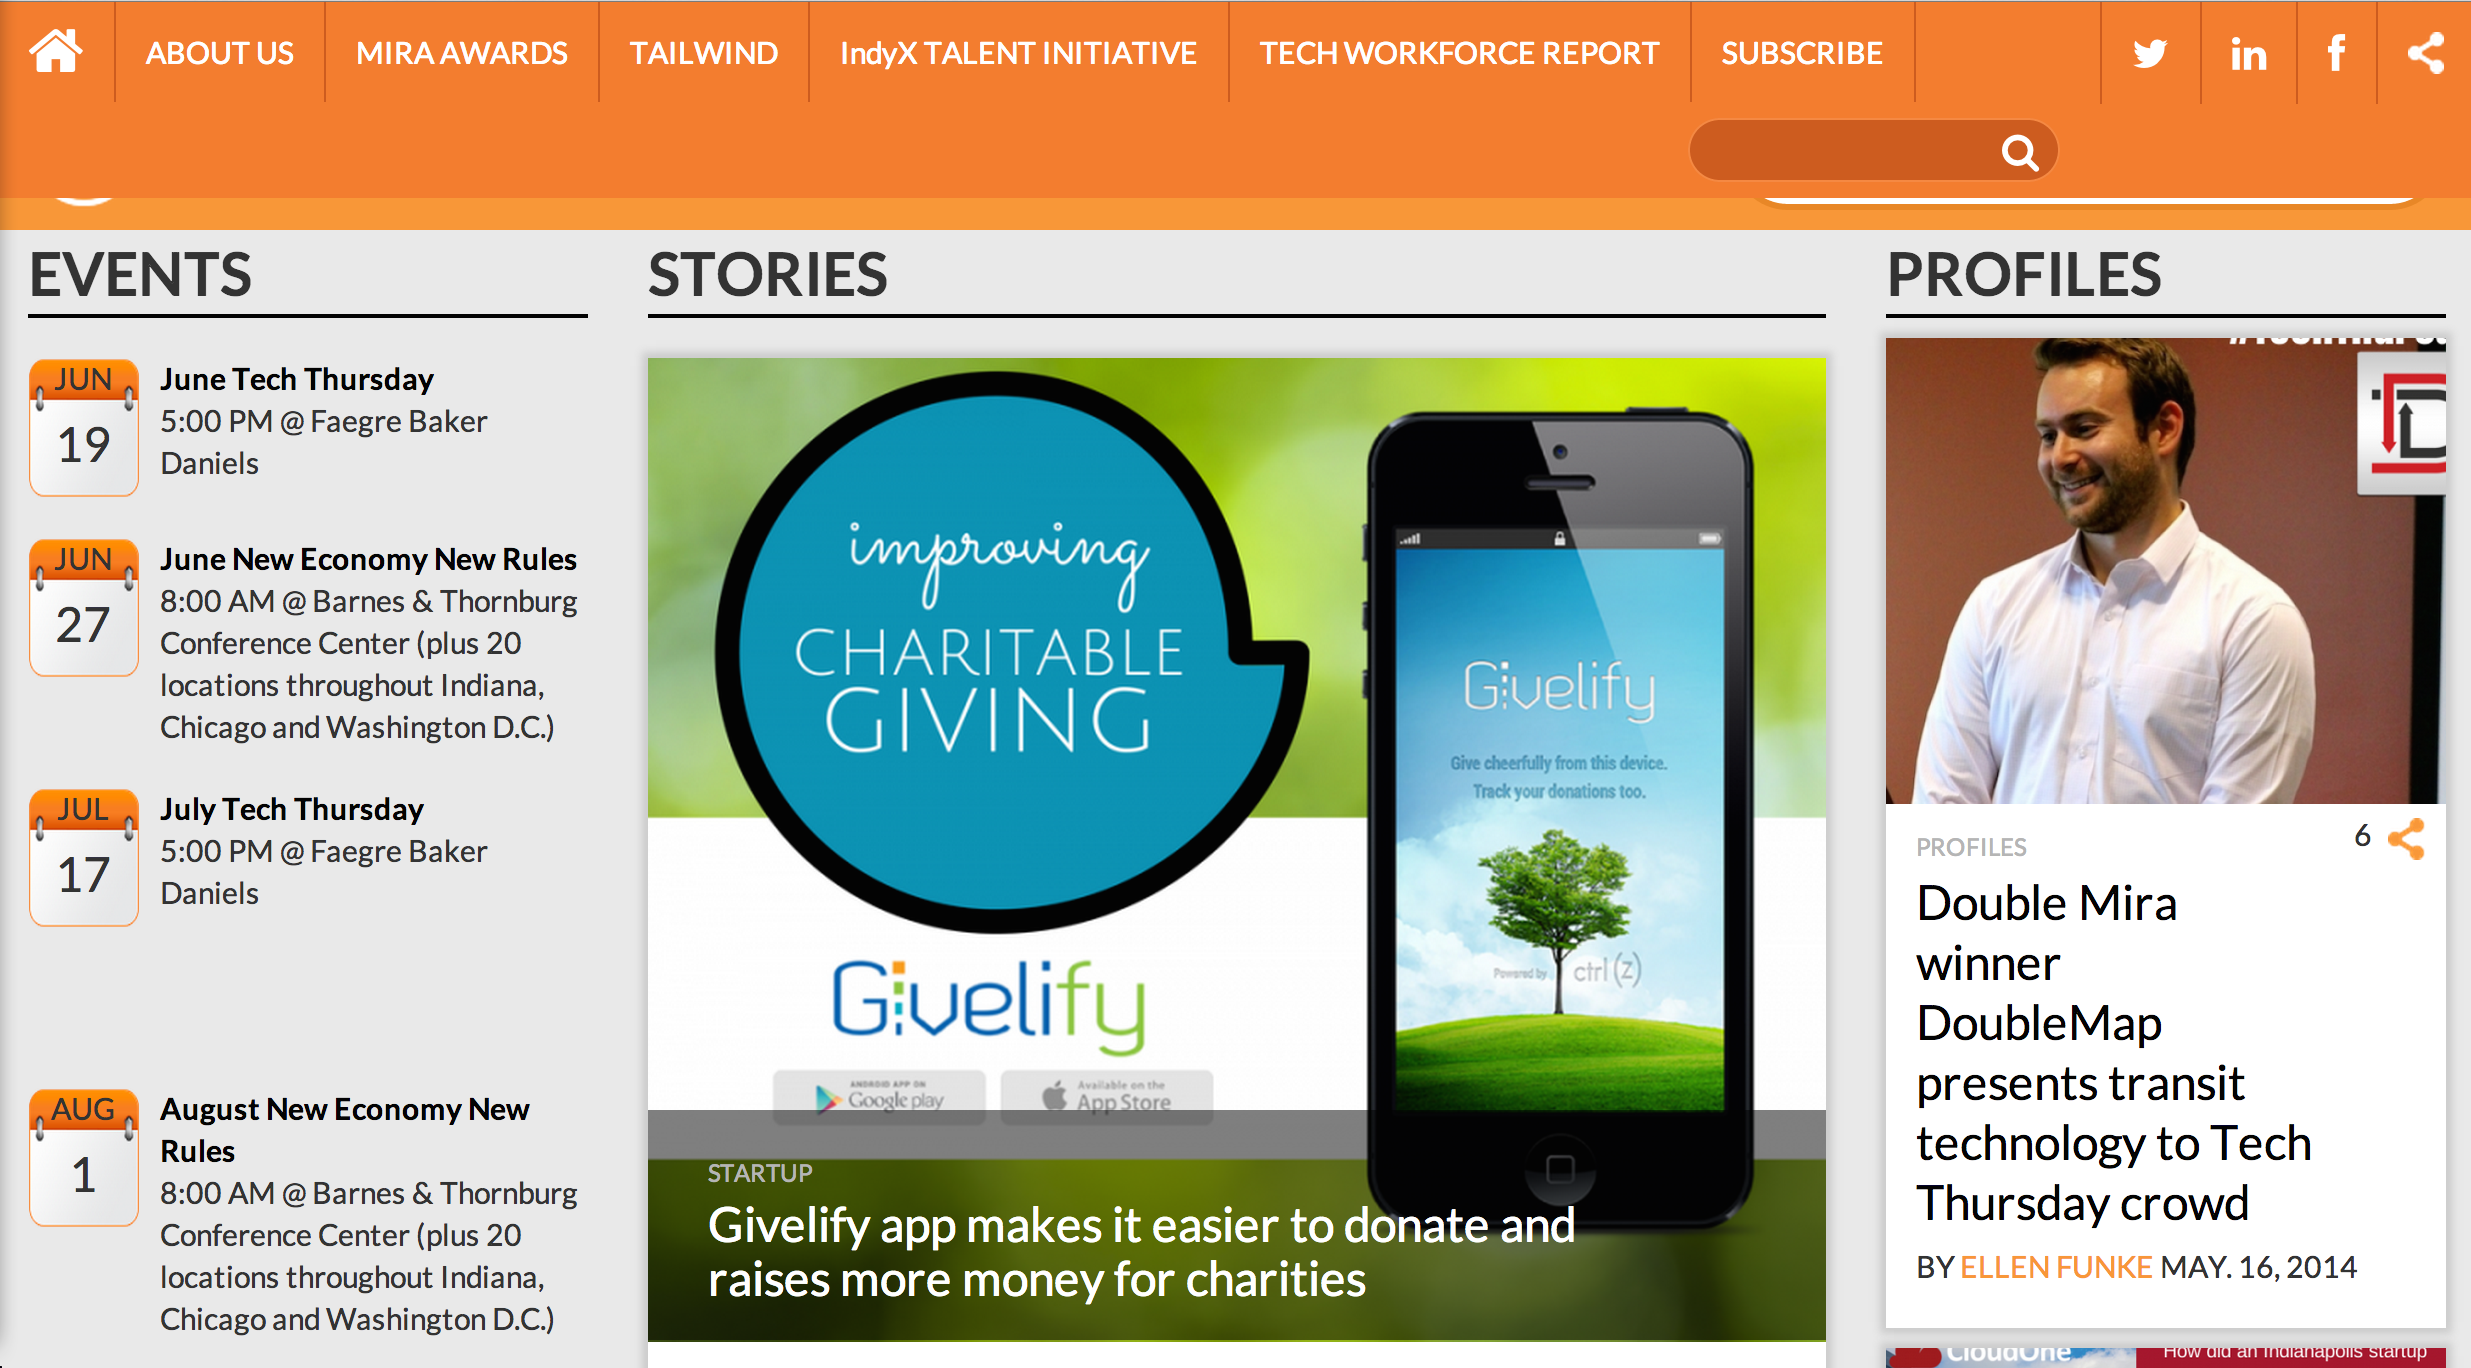 Givelify app makes it easier to donate and raises more money for charities